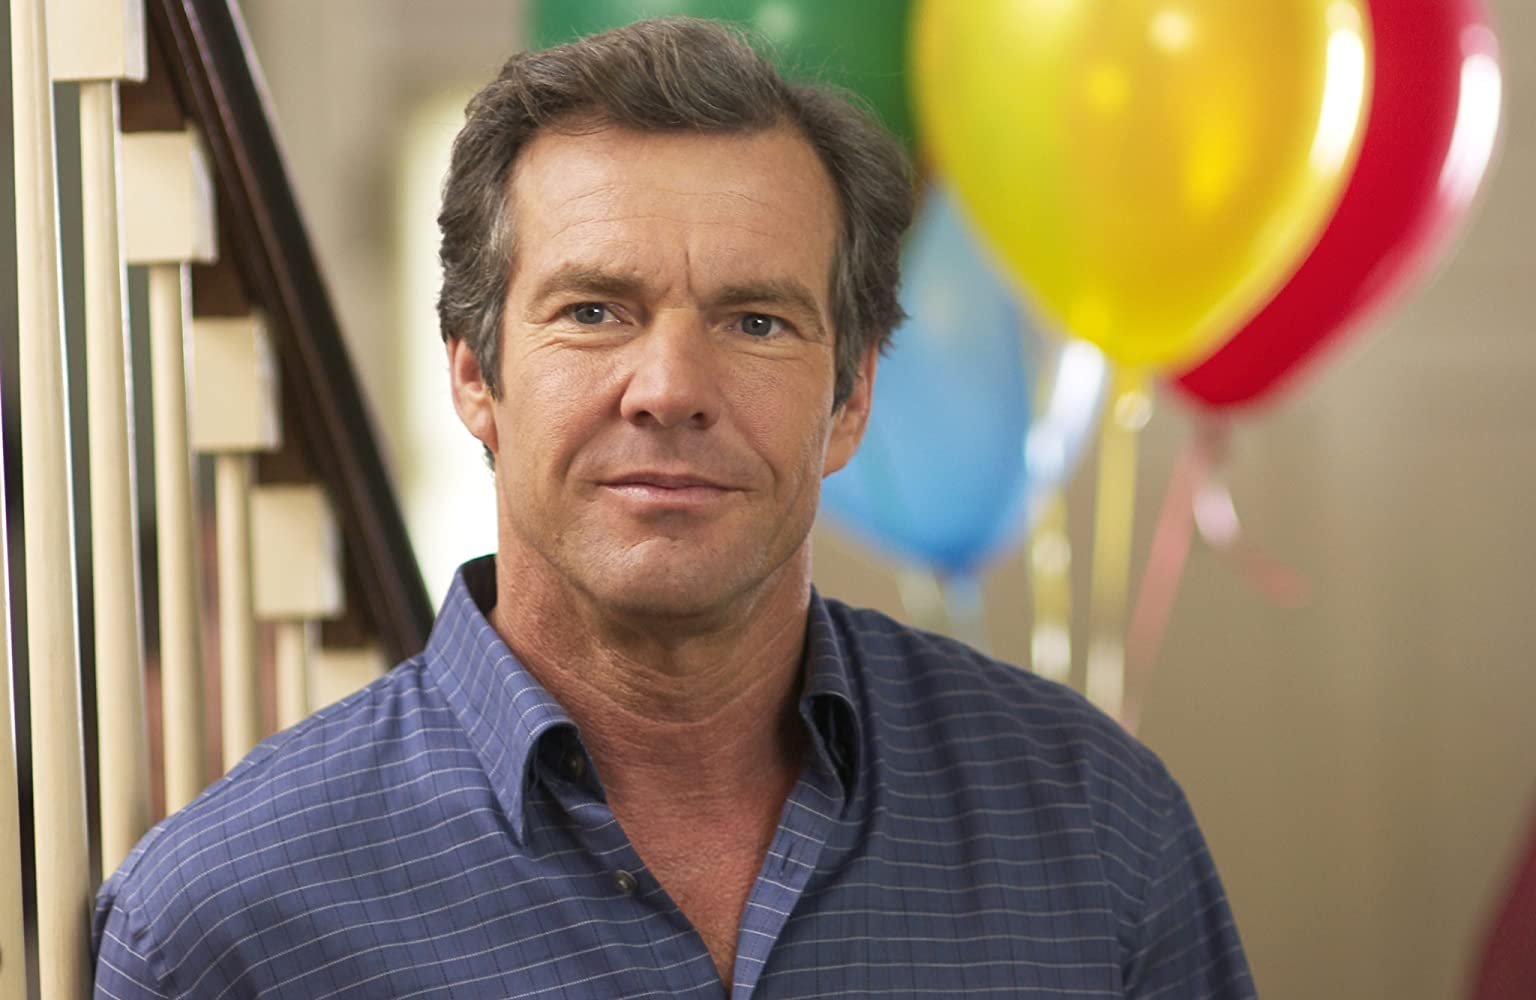 Dennis Quaid in In Good Company (2004)